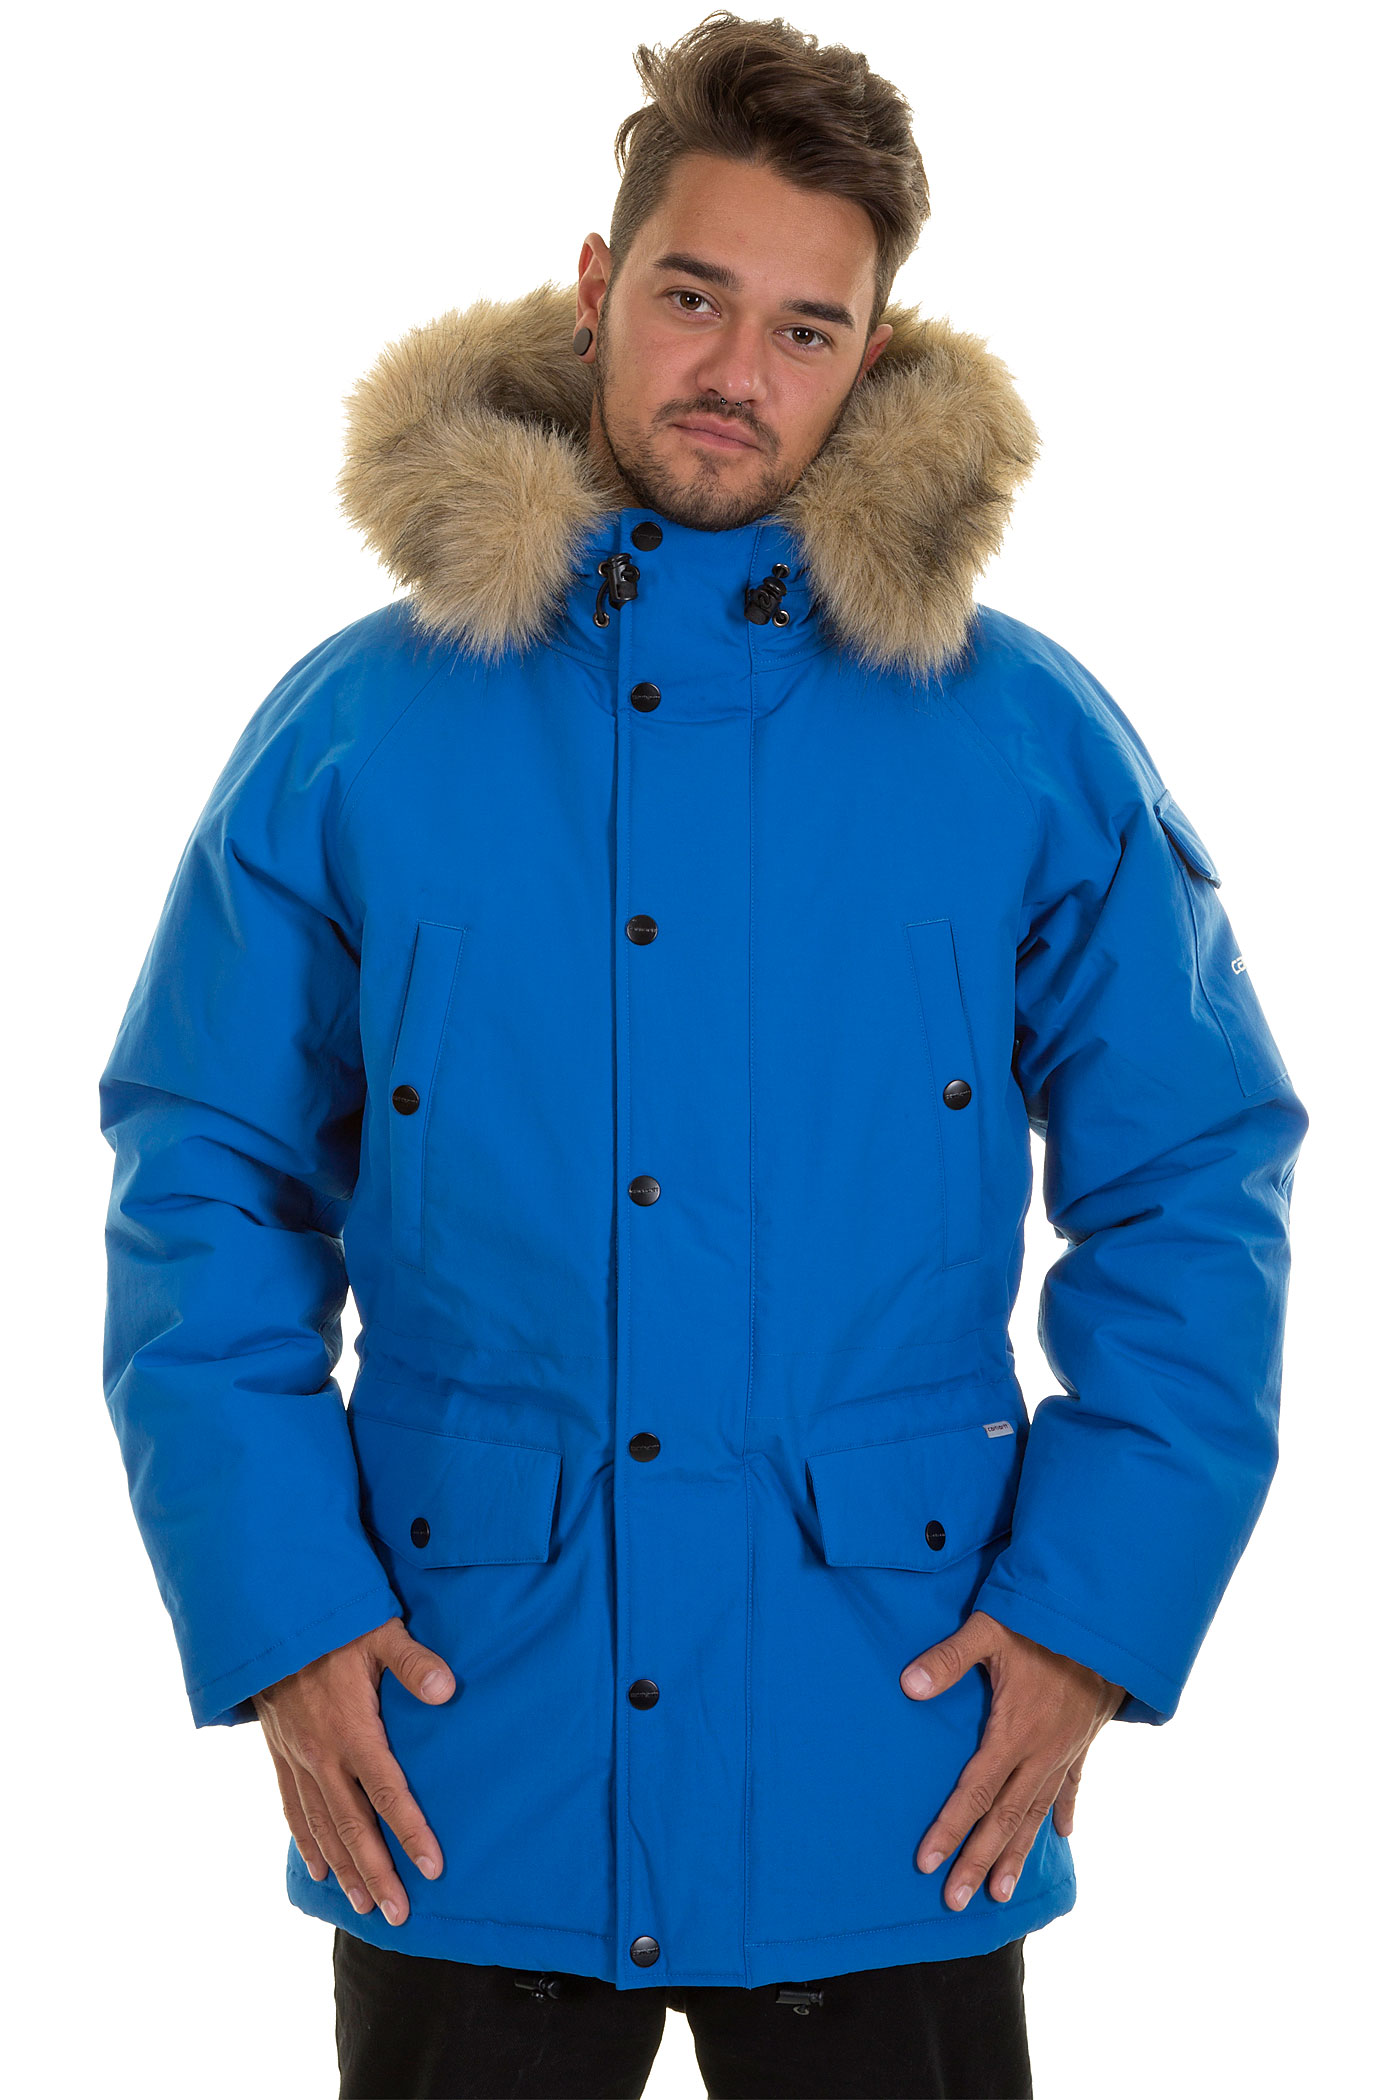 carhartt anchorage parka jacket imperial blue broken. Black Bedroom Furniture Sets. Home Design Ideas